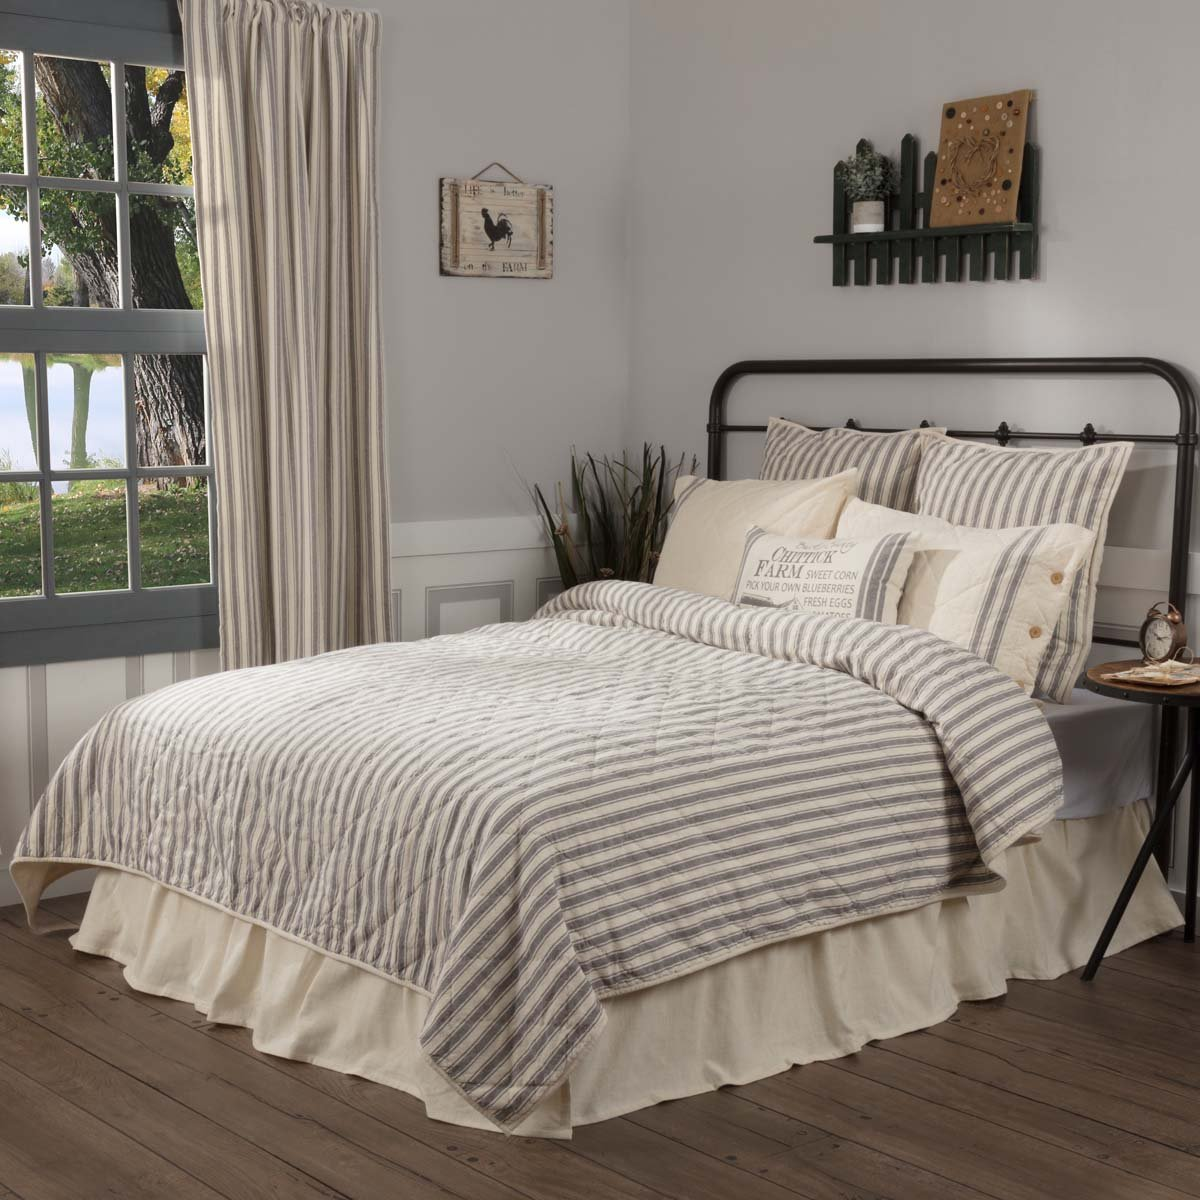 Piper Classics Market Place Gray Ticking Stripe Quilt